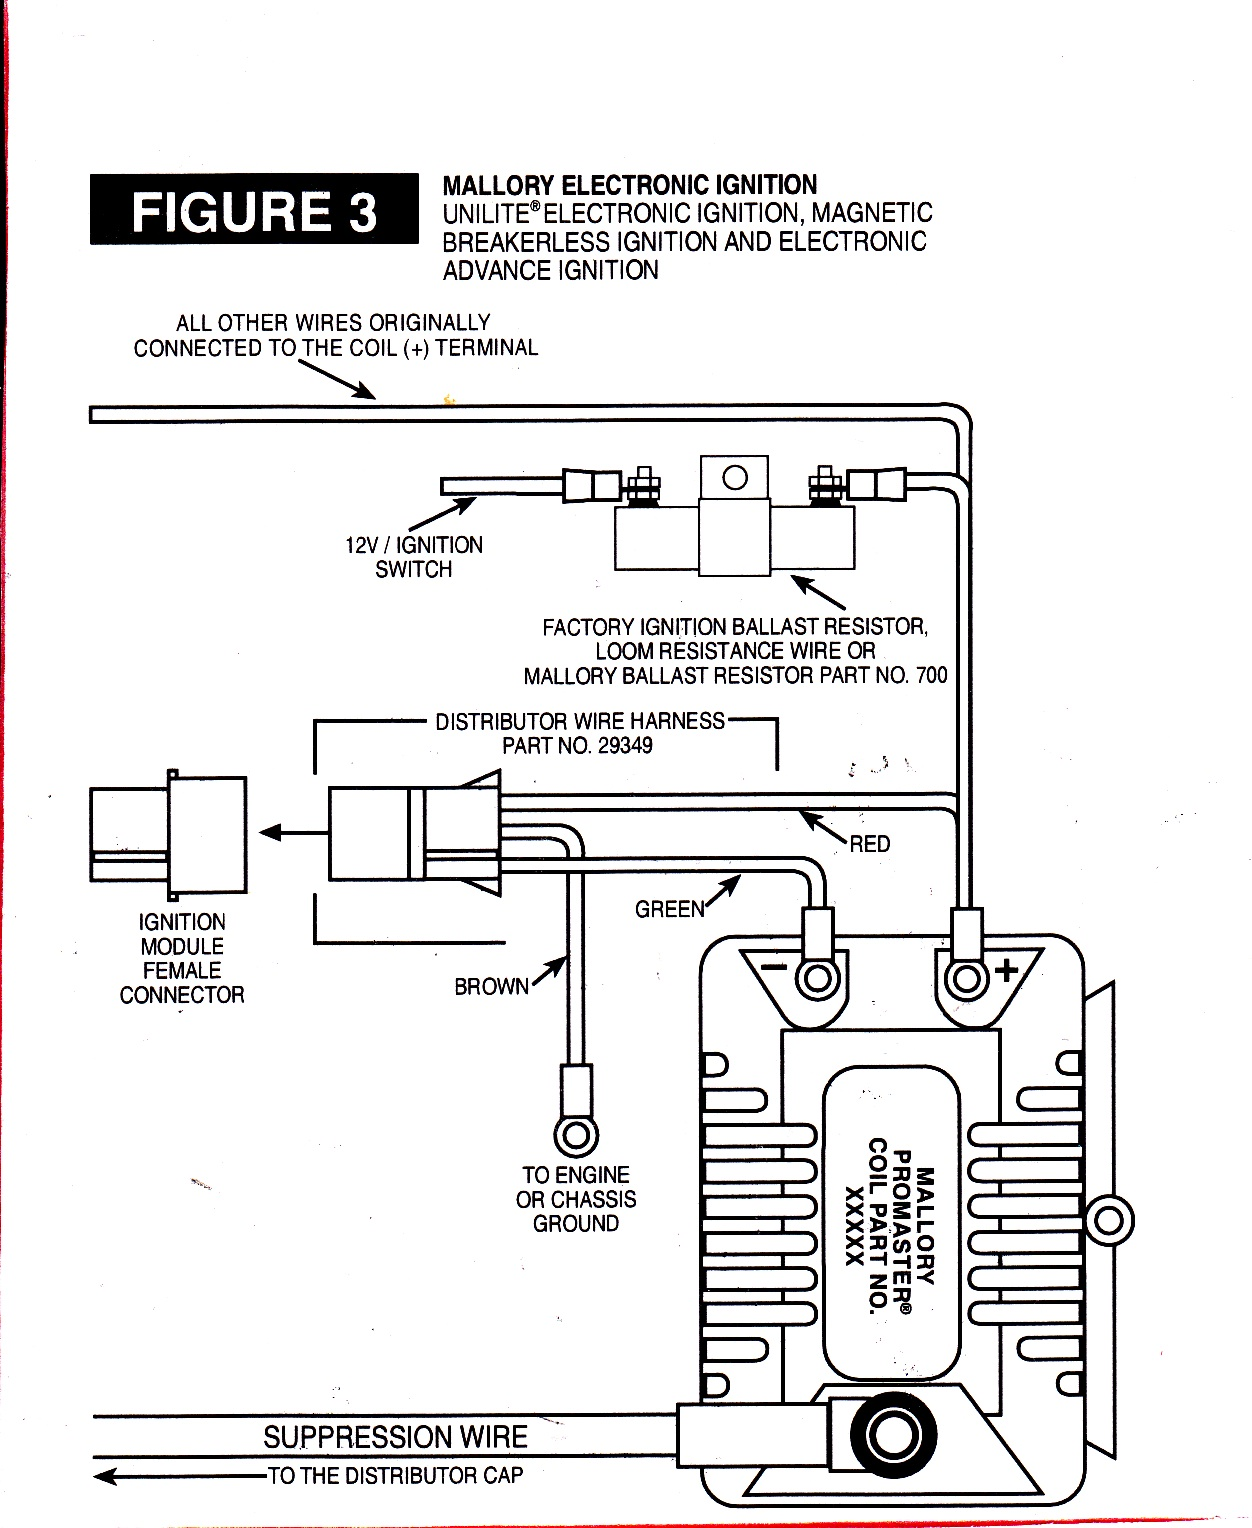 blowing ign acc 20 amp fuses at box the h a m b unilite wiring diagram at aneh.co